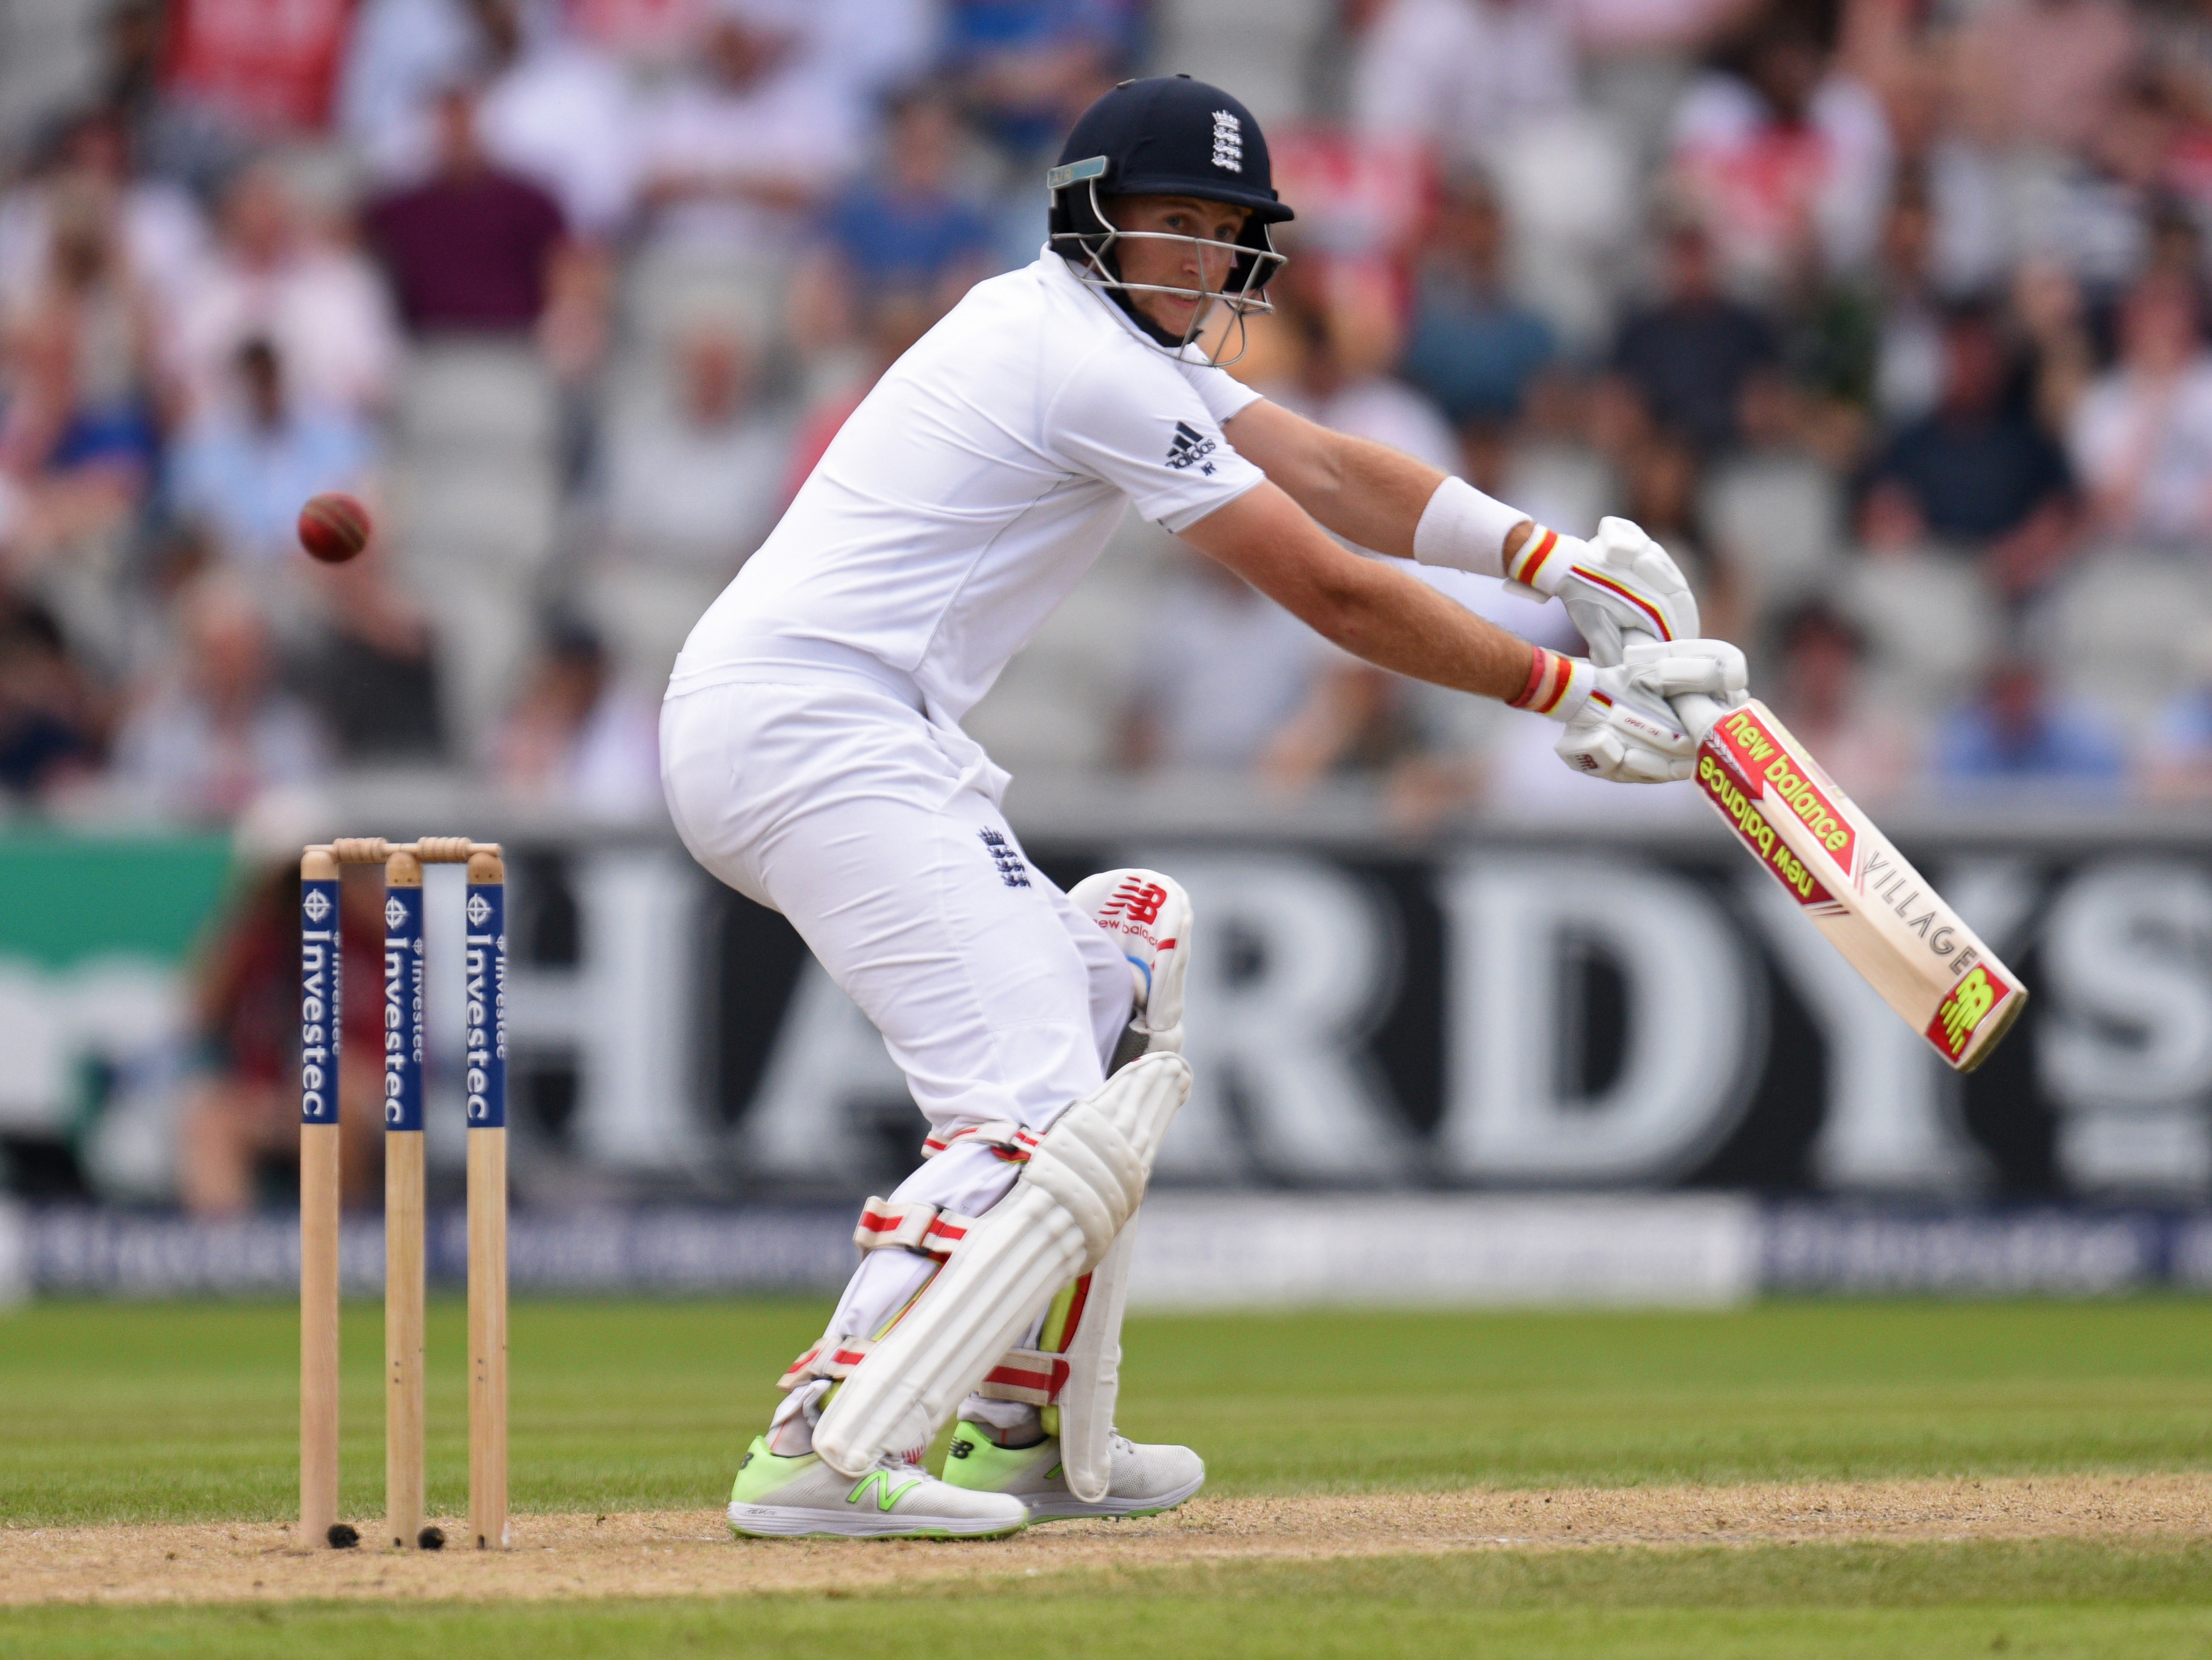 England's Joe Root plays a shot on the second day of the second Test cricket match between England and Pakistan at Old Trafford Cricket Ground in Manchester, England on July 23, 2016. / AFP PHOTO / OLI SCARFF